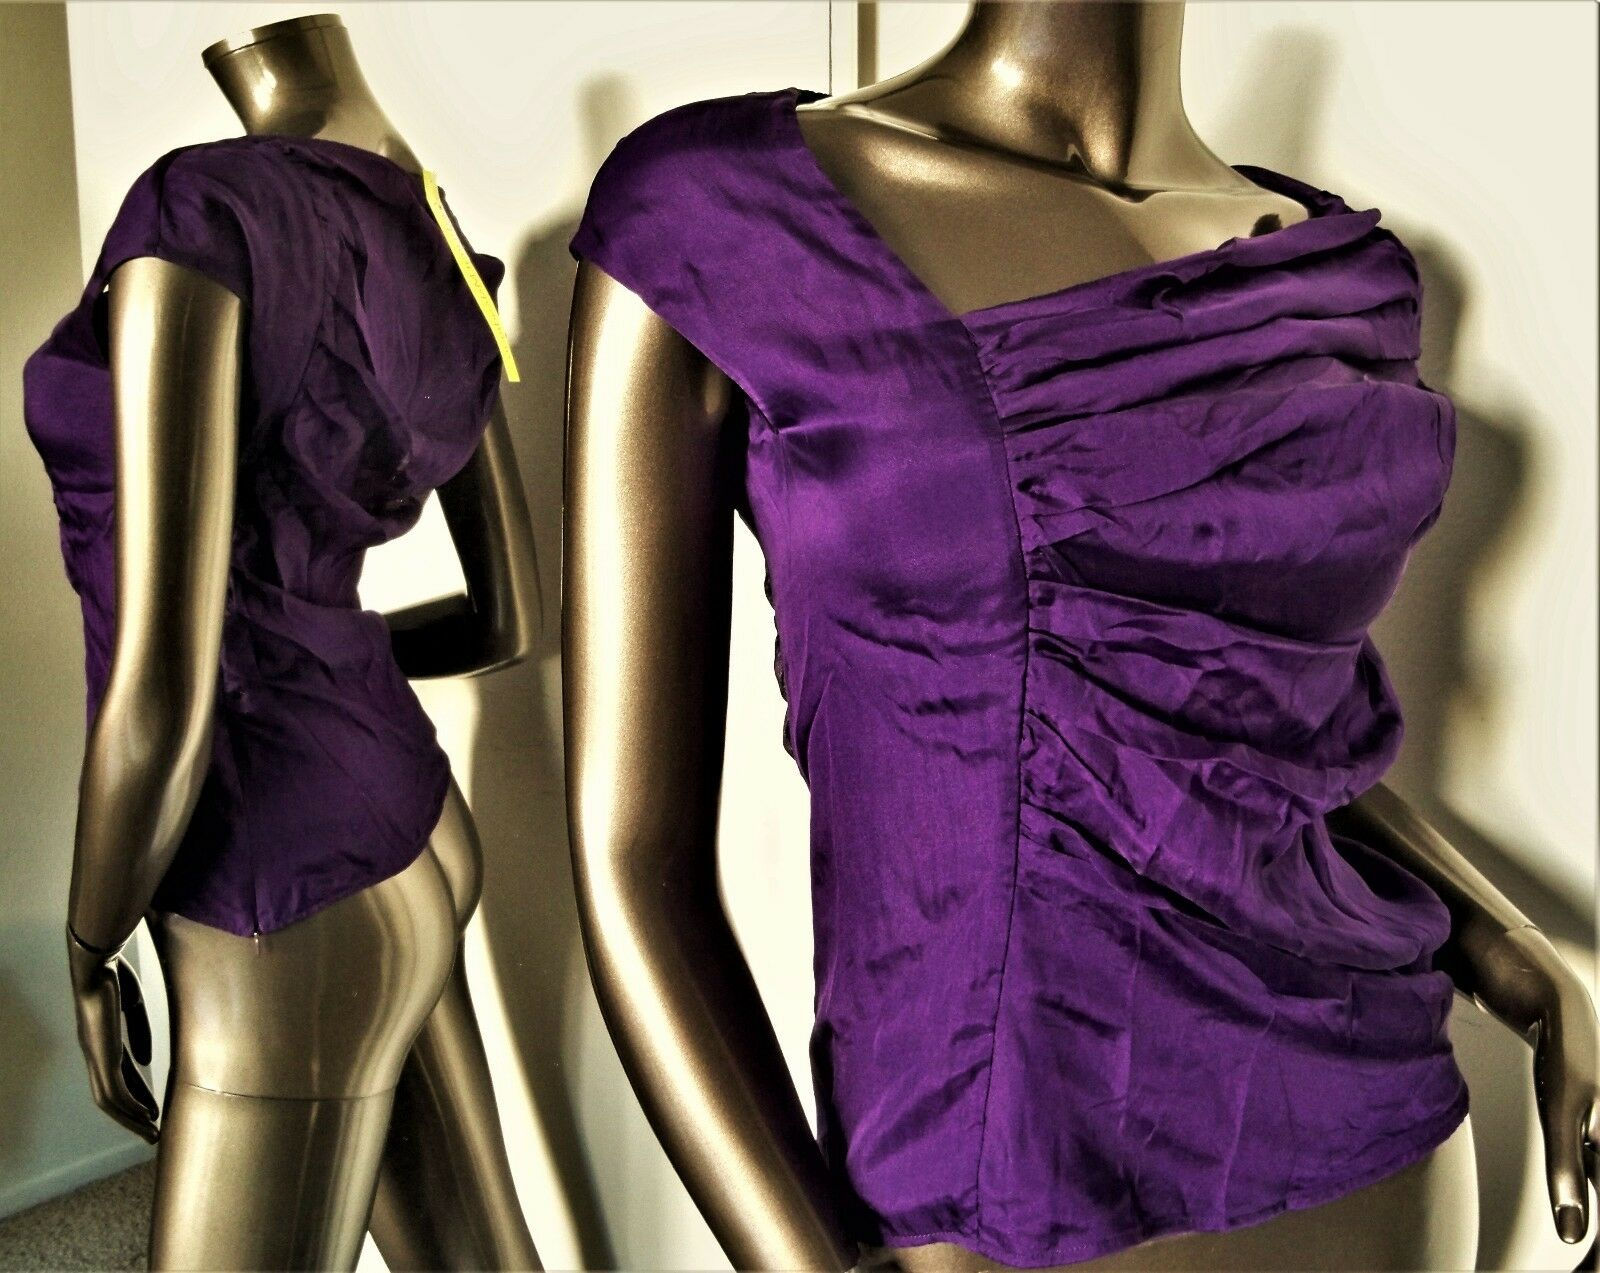 NWT-CATHERINE MALANDRINO lila DRAPED RUCHED SILK FITTED BLOUSE SZ-S MSP-